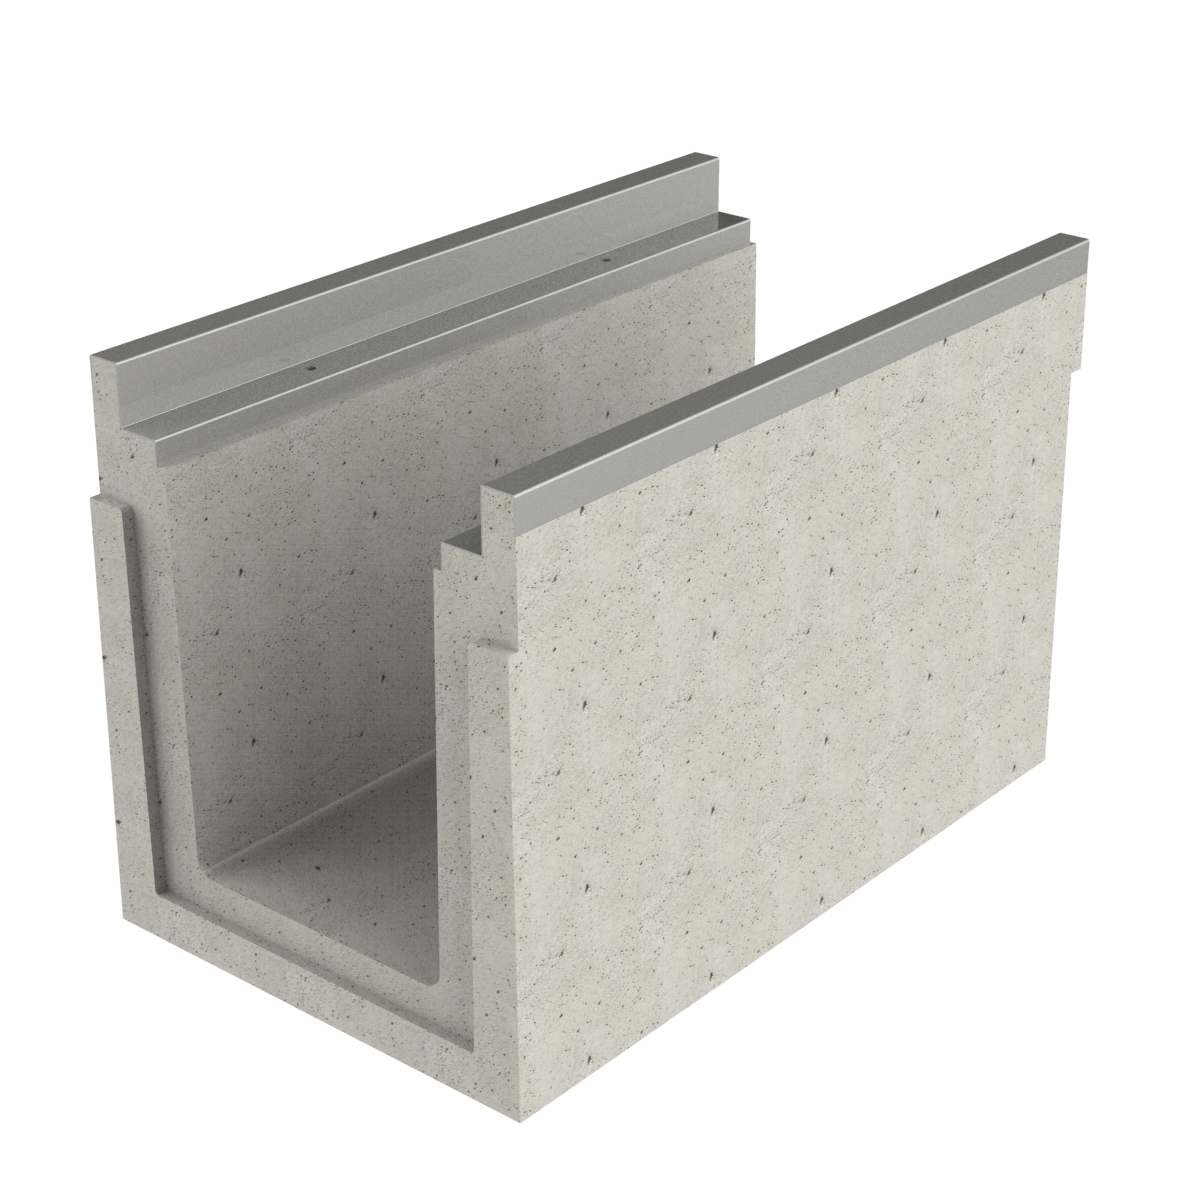 Channel of concrete premanufactured with frame 100x50x66